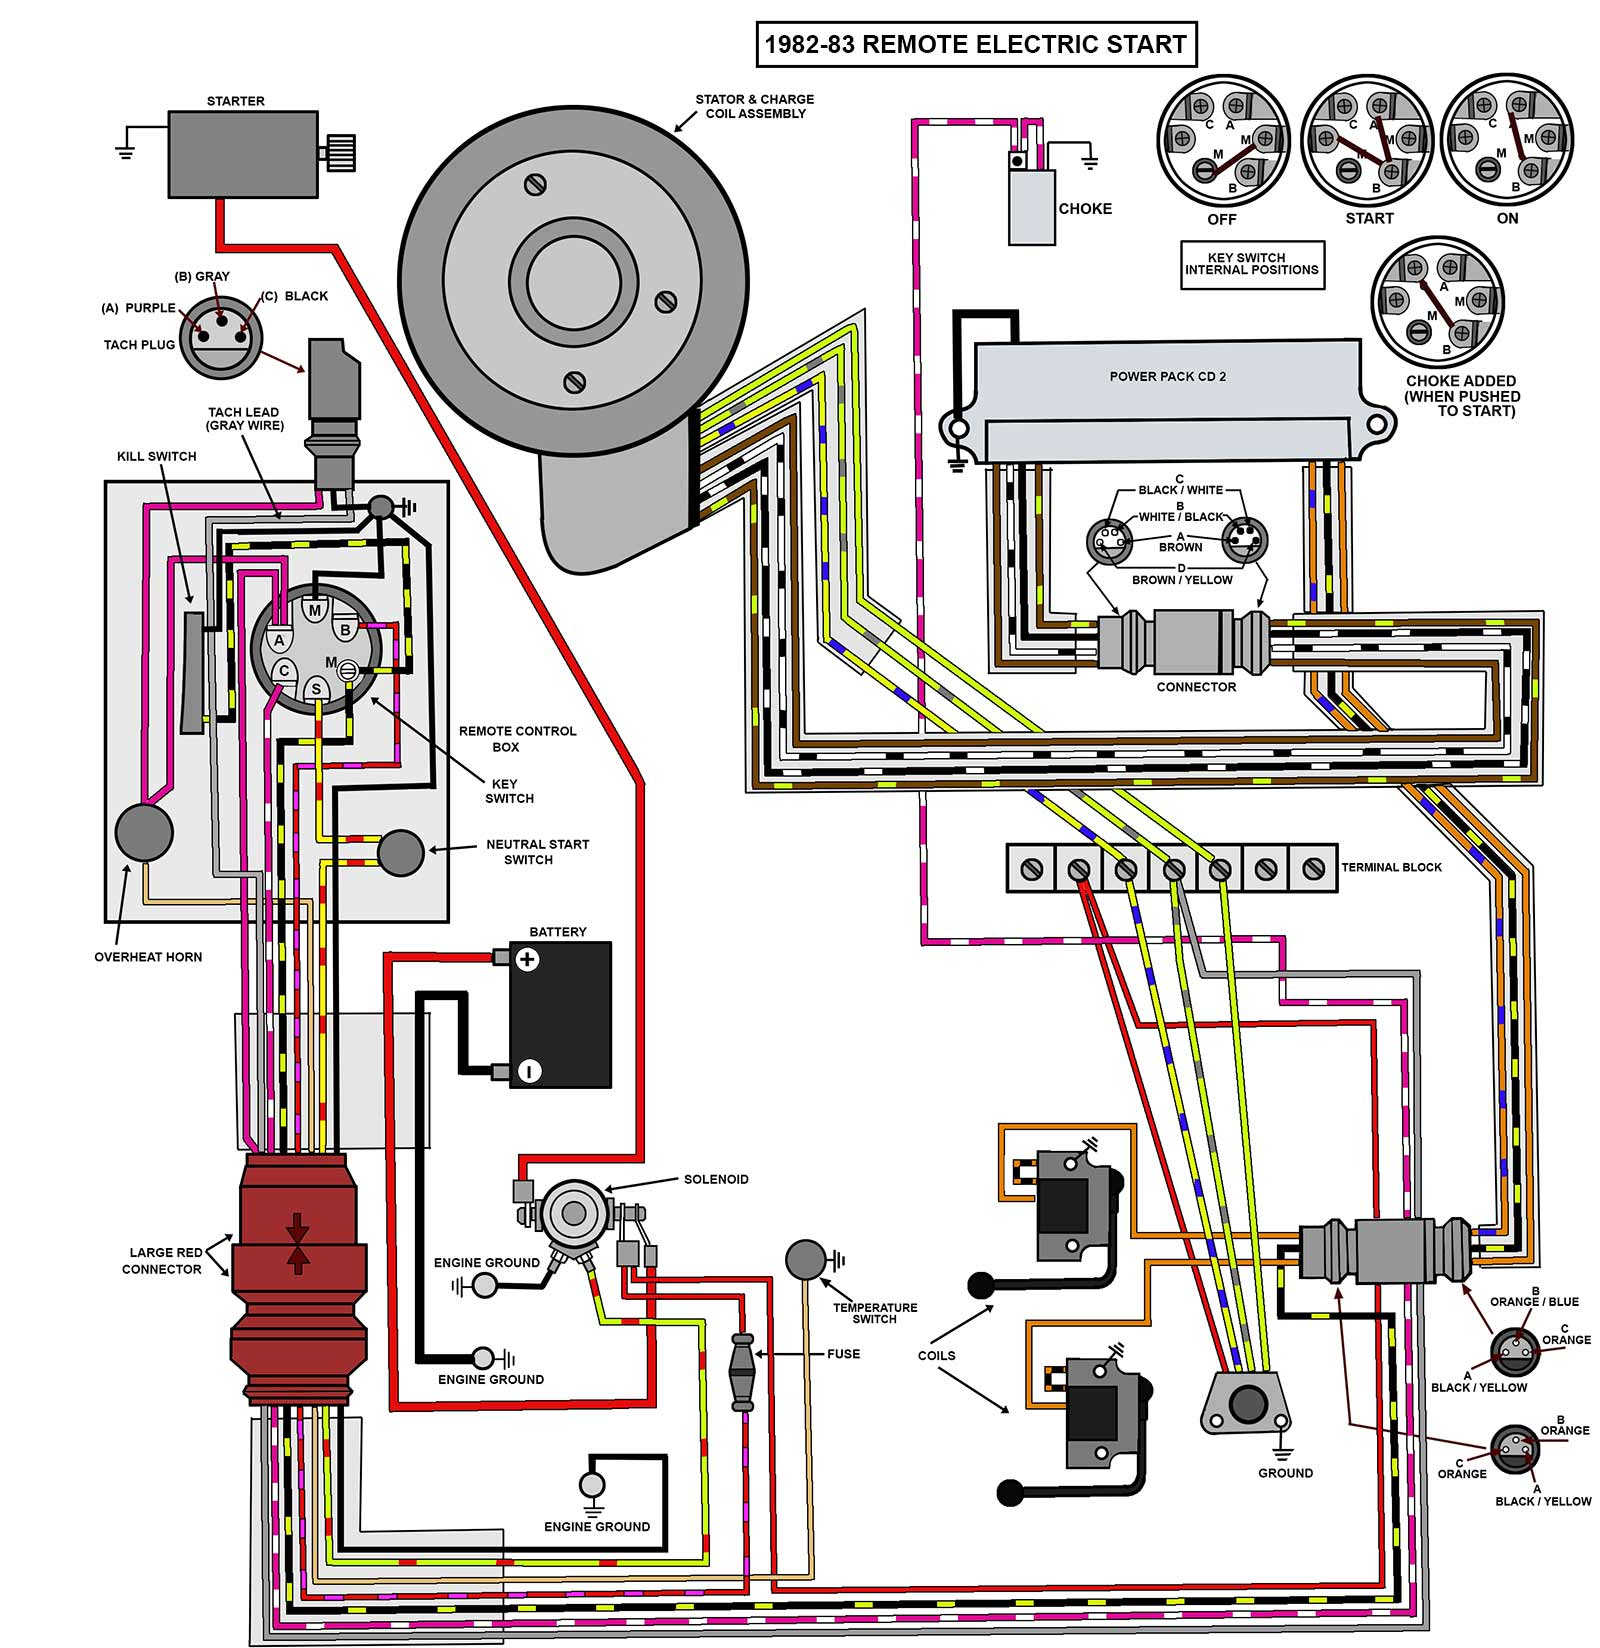 1979 Evinrude Wiring Diagram - Trusted Wiring Diagram Online on numbers diagram, cigarette diagram, cobra diagram, civil war diagram, birds of prey diagram, stingray diagram, black panther diagram,